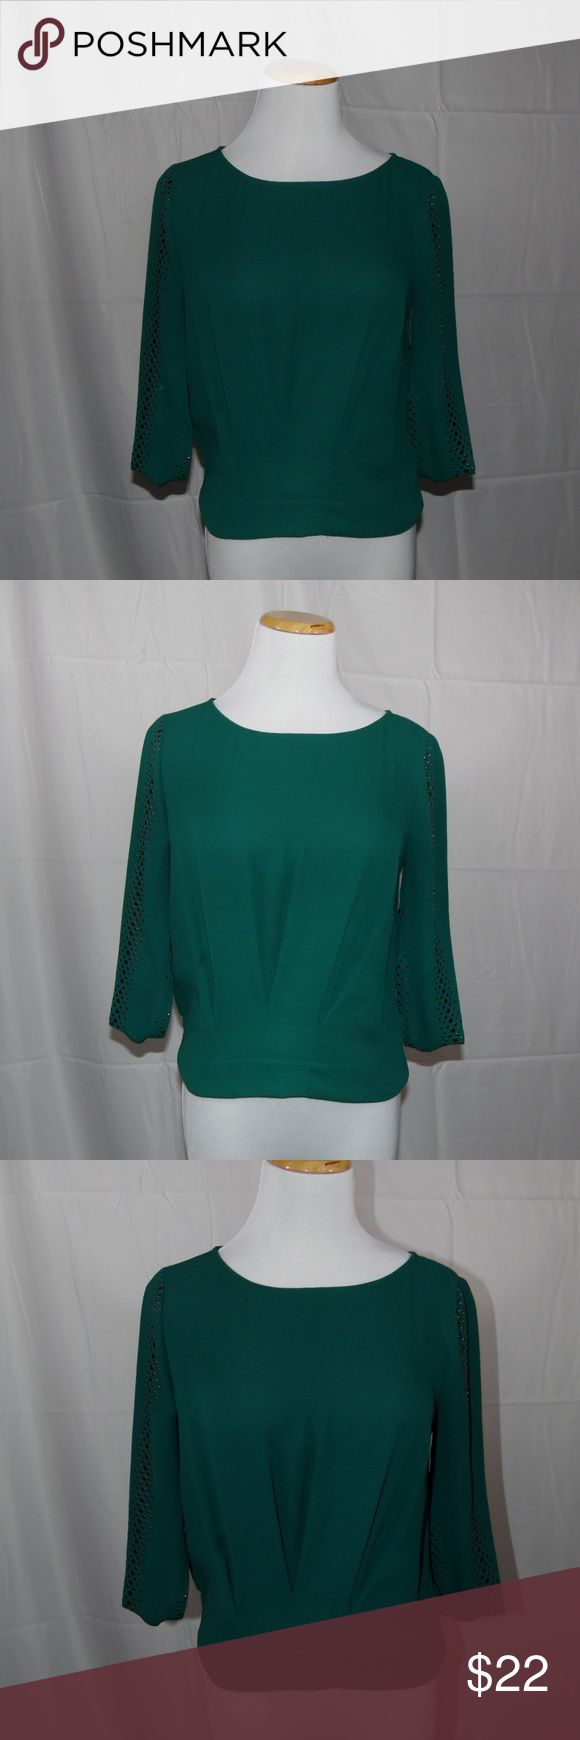 BCBGMaxAzria Top Marlene Jewel Green, Size XS, In great condition BCBGMaxAzria Top. Perfect to wear for a night out on the town, very minimally worn. BCBGMaxAzria Tops Blouses